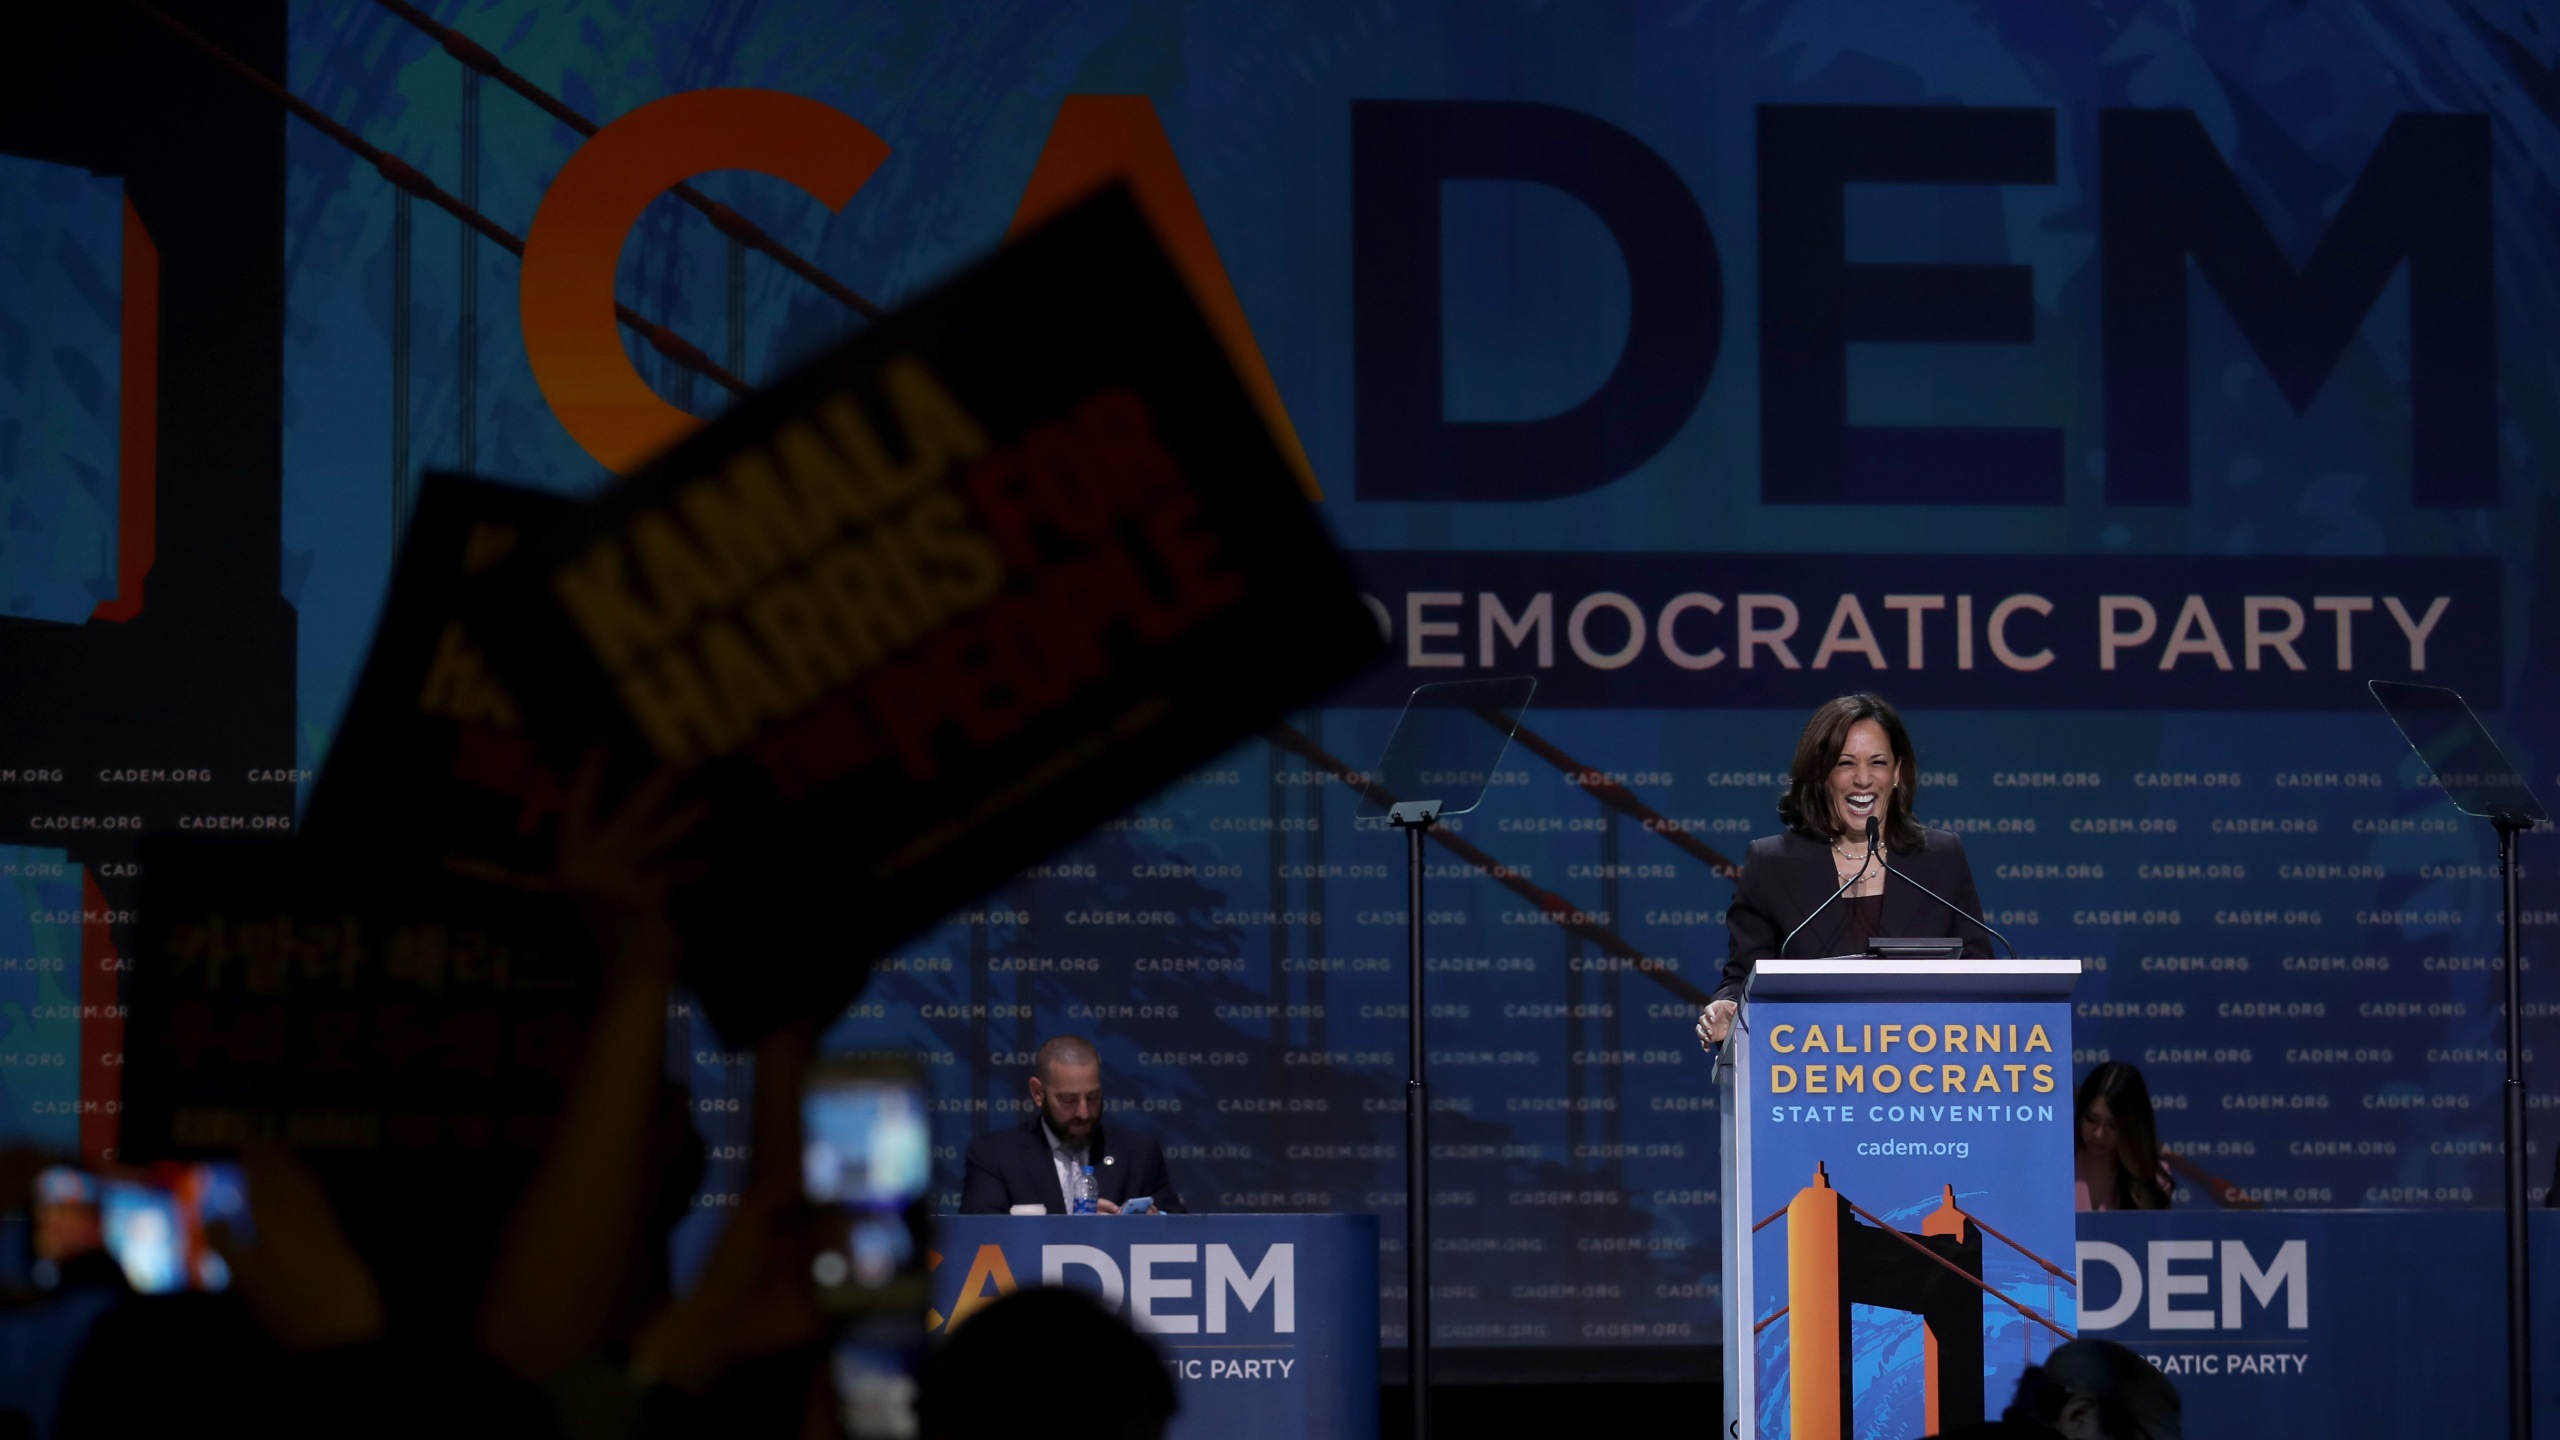 Democratic presidential hopeful U.S. Sen. Kamala Harris (D-CA) speaks during the California Democrats 2019 State Convention at the Moscone Center on June 1, 2019 in San Francisco. (Credit: Justin Sullivan/Getty Images)